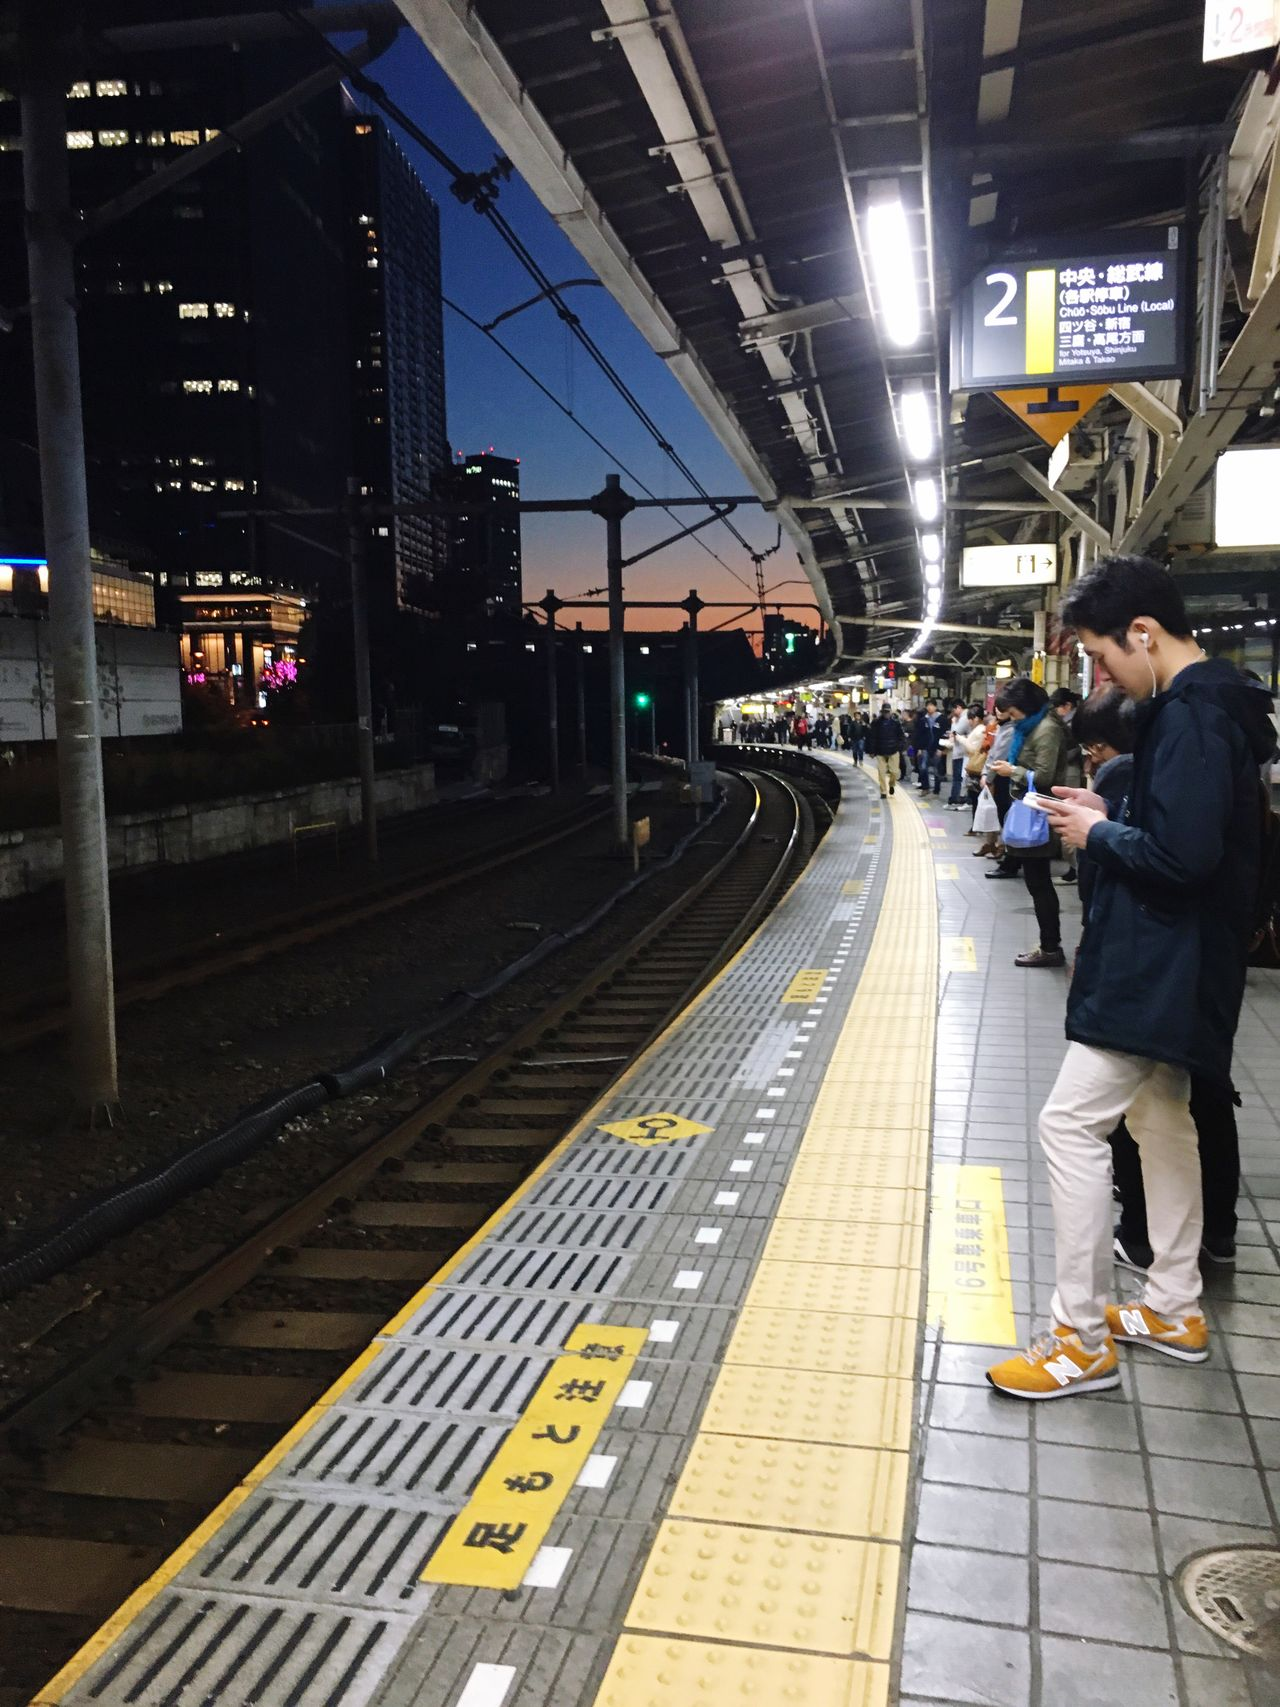 Tokyo,Japan Train Transportation Waiting Train Station Life JapanLife Public Transportation Night Lights Night Sky